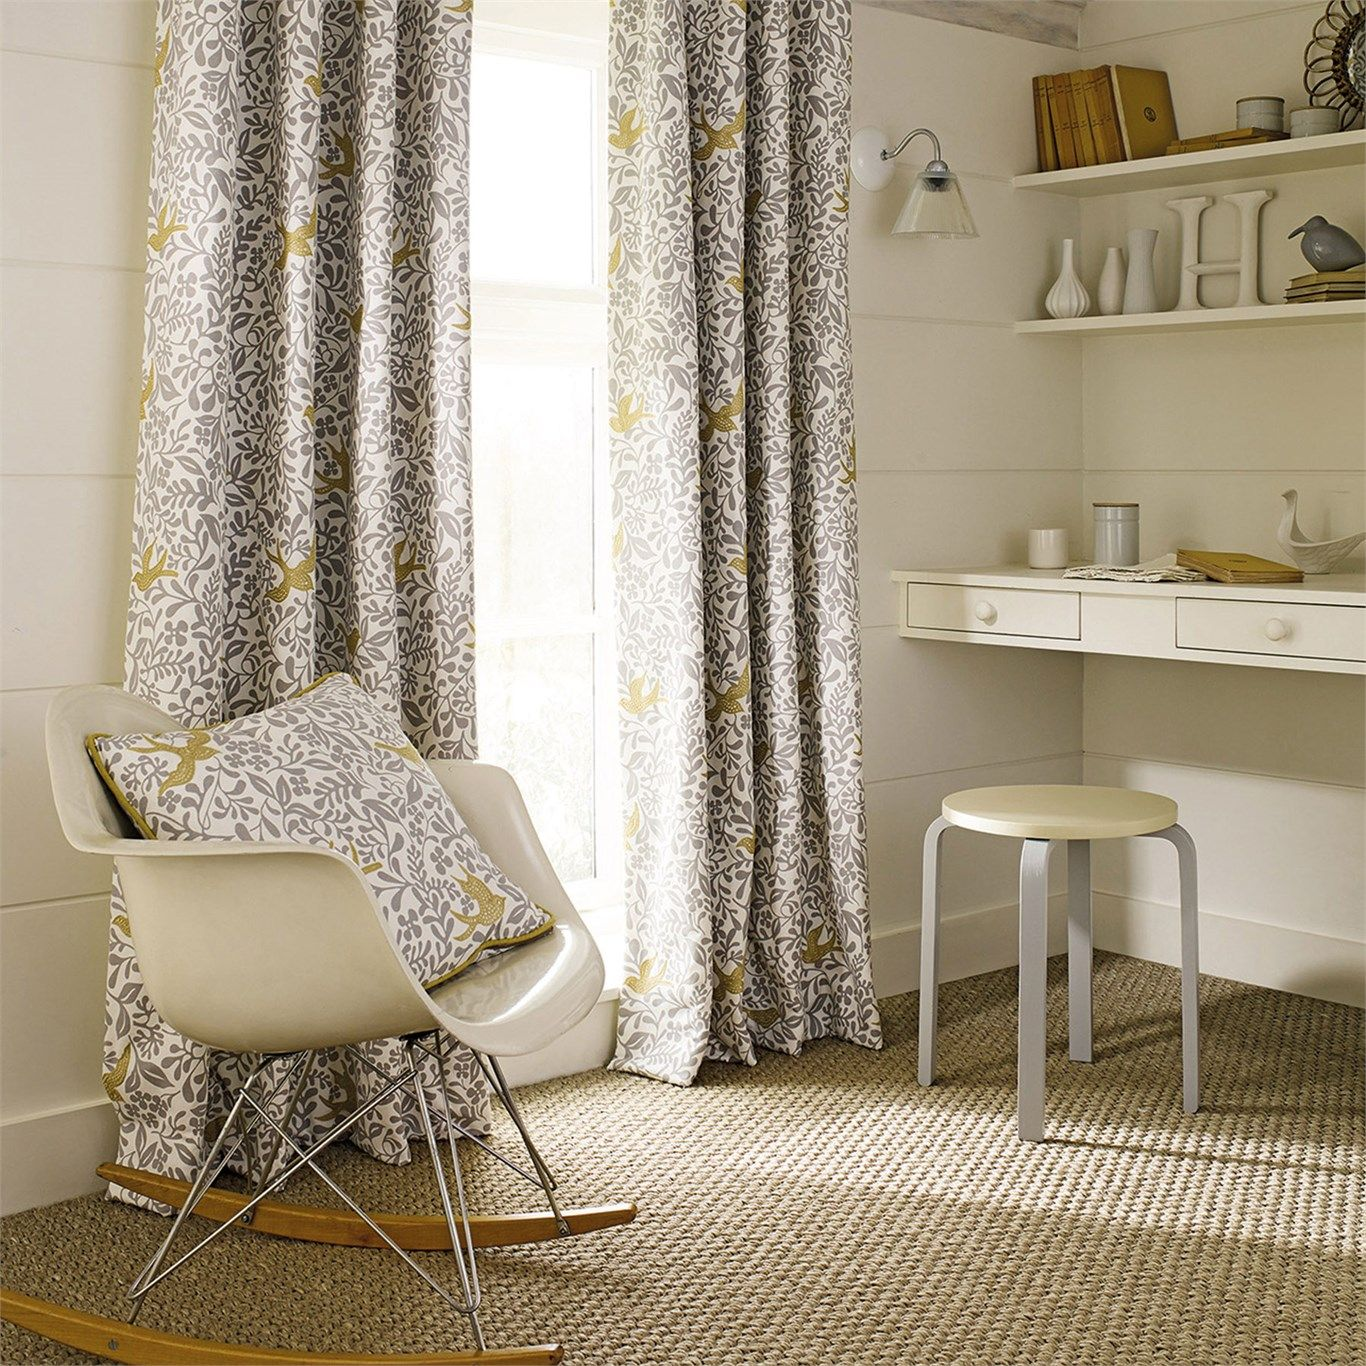 Best Of Curtains with Yellow Walls